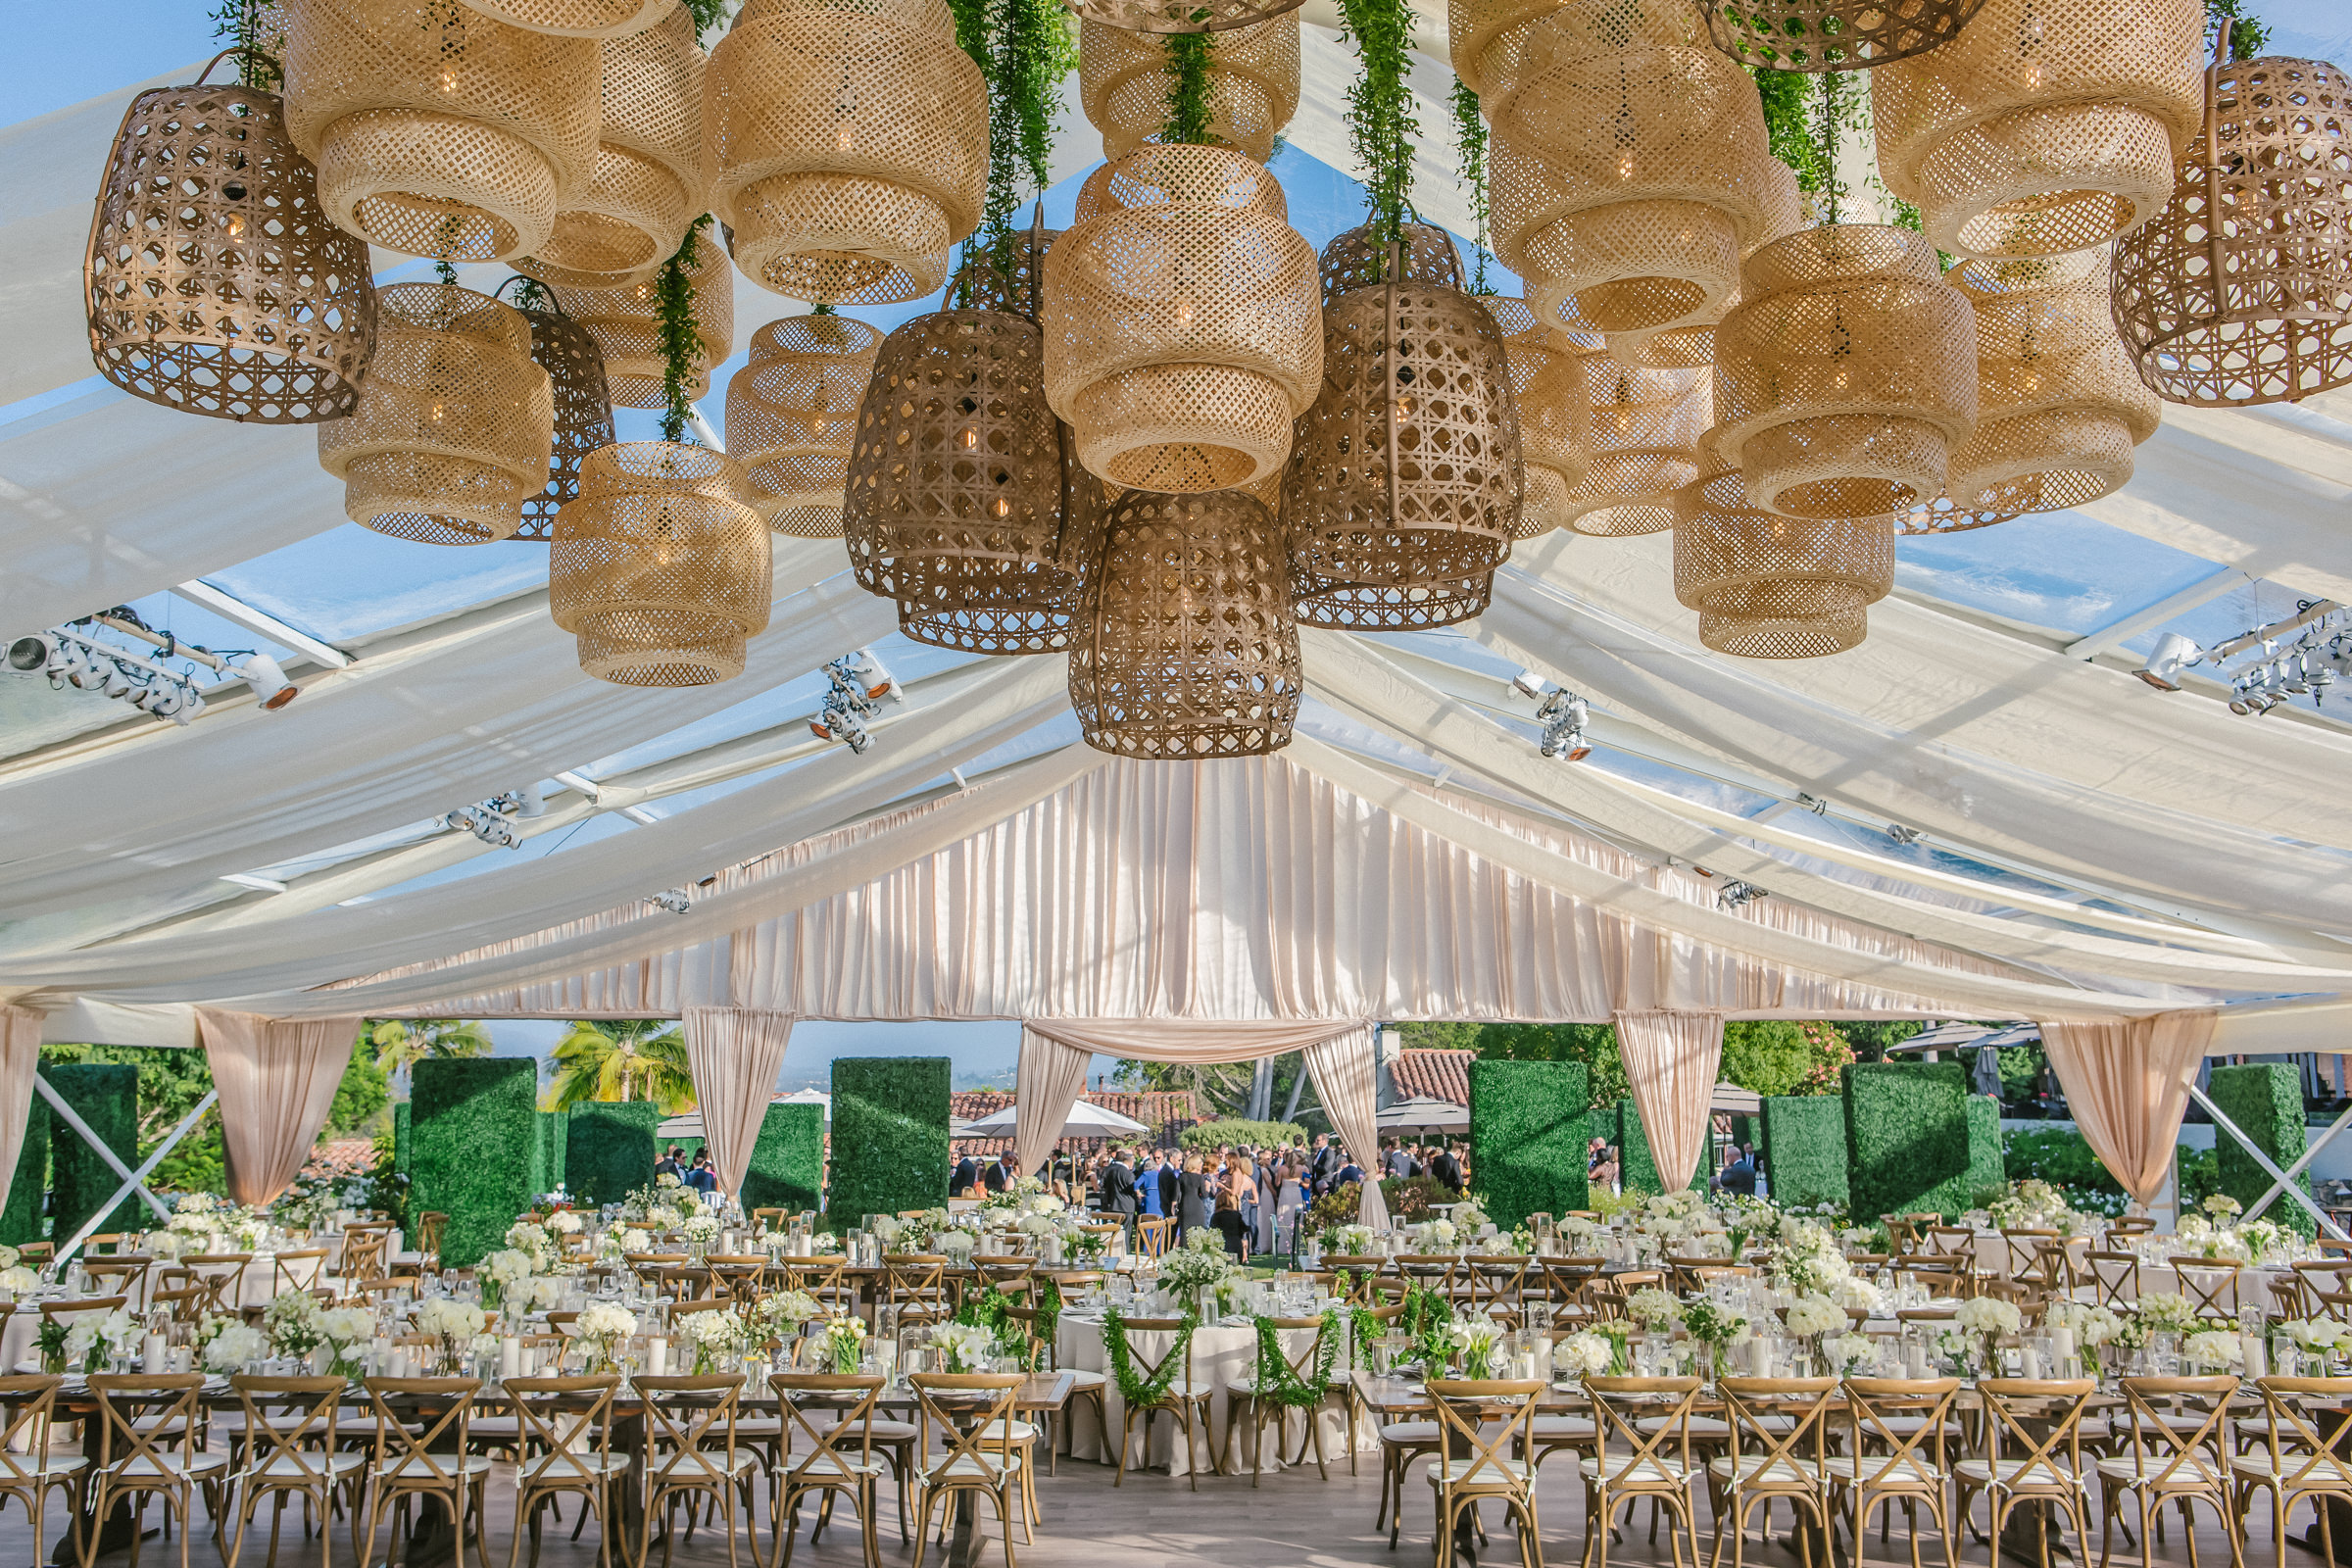 reception-decor-with-woven-natural-material-hanging-lights-amyandstuart-photography